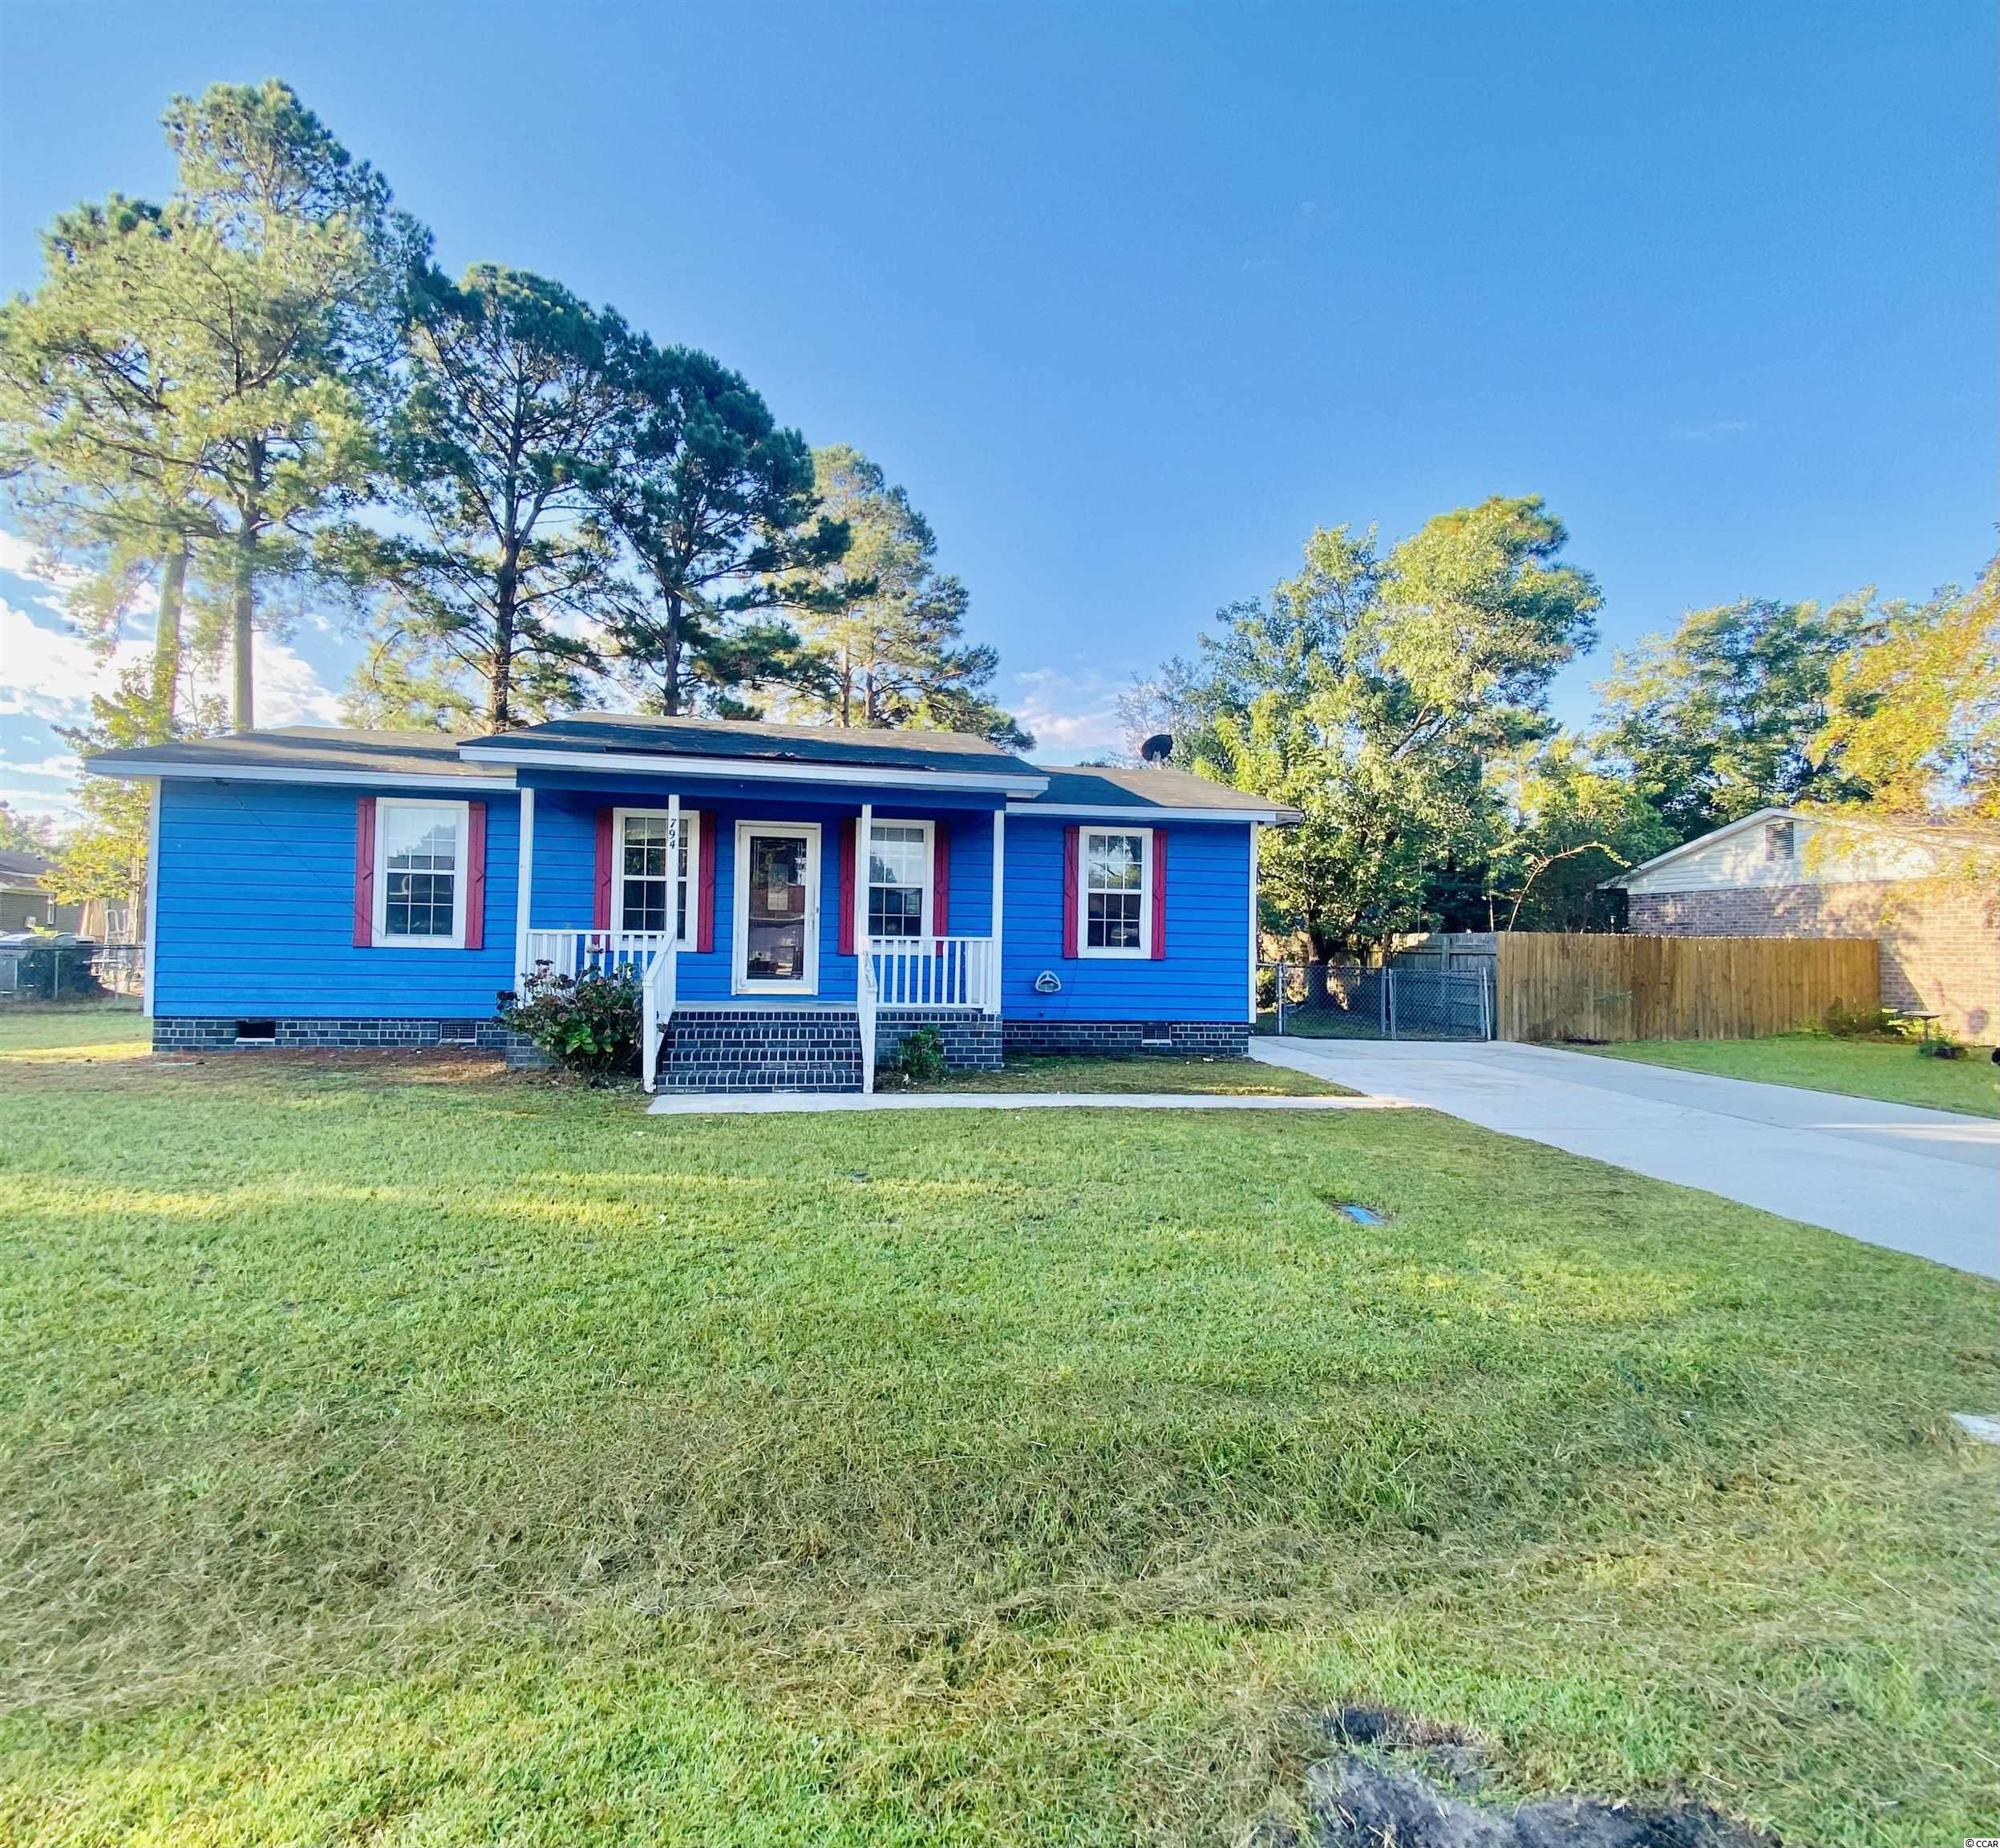 Located in the University Forest area of Conway, this home and land has tons of potential. With 3 bedrooms, 1.5 baths, an open floor plan for the kitchen, dining and living spaces as well as a laundry room and outdoor storage closet, all this home needs is some TLC and vision. This home would be perfect for an investor or someone looking for a great deal who would enjoy renovating to their taste! There are so many options for the large fenced backyard as well.  This home is being sold AS IS. There is no HOA, park your boats, campers, etc. Located in the Carolina Forest H.S. district, this home is situated close to CCU, HGTC, downtown Conway, shopping, dining, health care and, of course, a short drive to the beach. Don't miss out on this one!